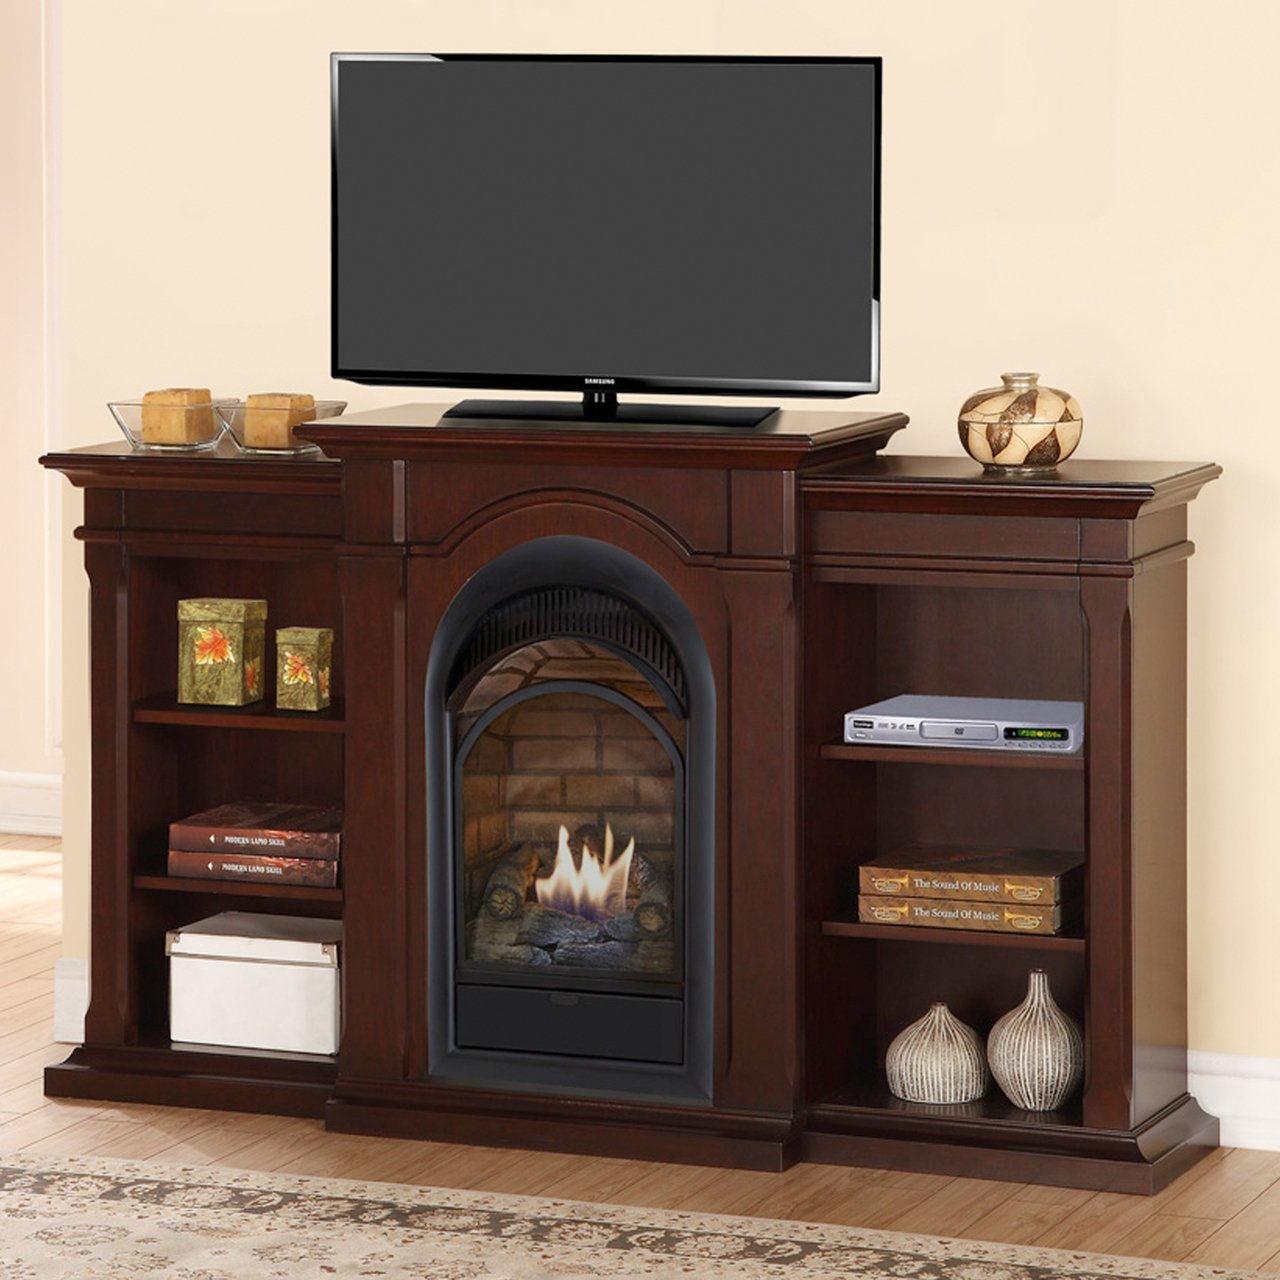 Amazon.com: Duluth Forge Dual Fuel Vent Free Fireplace With ...